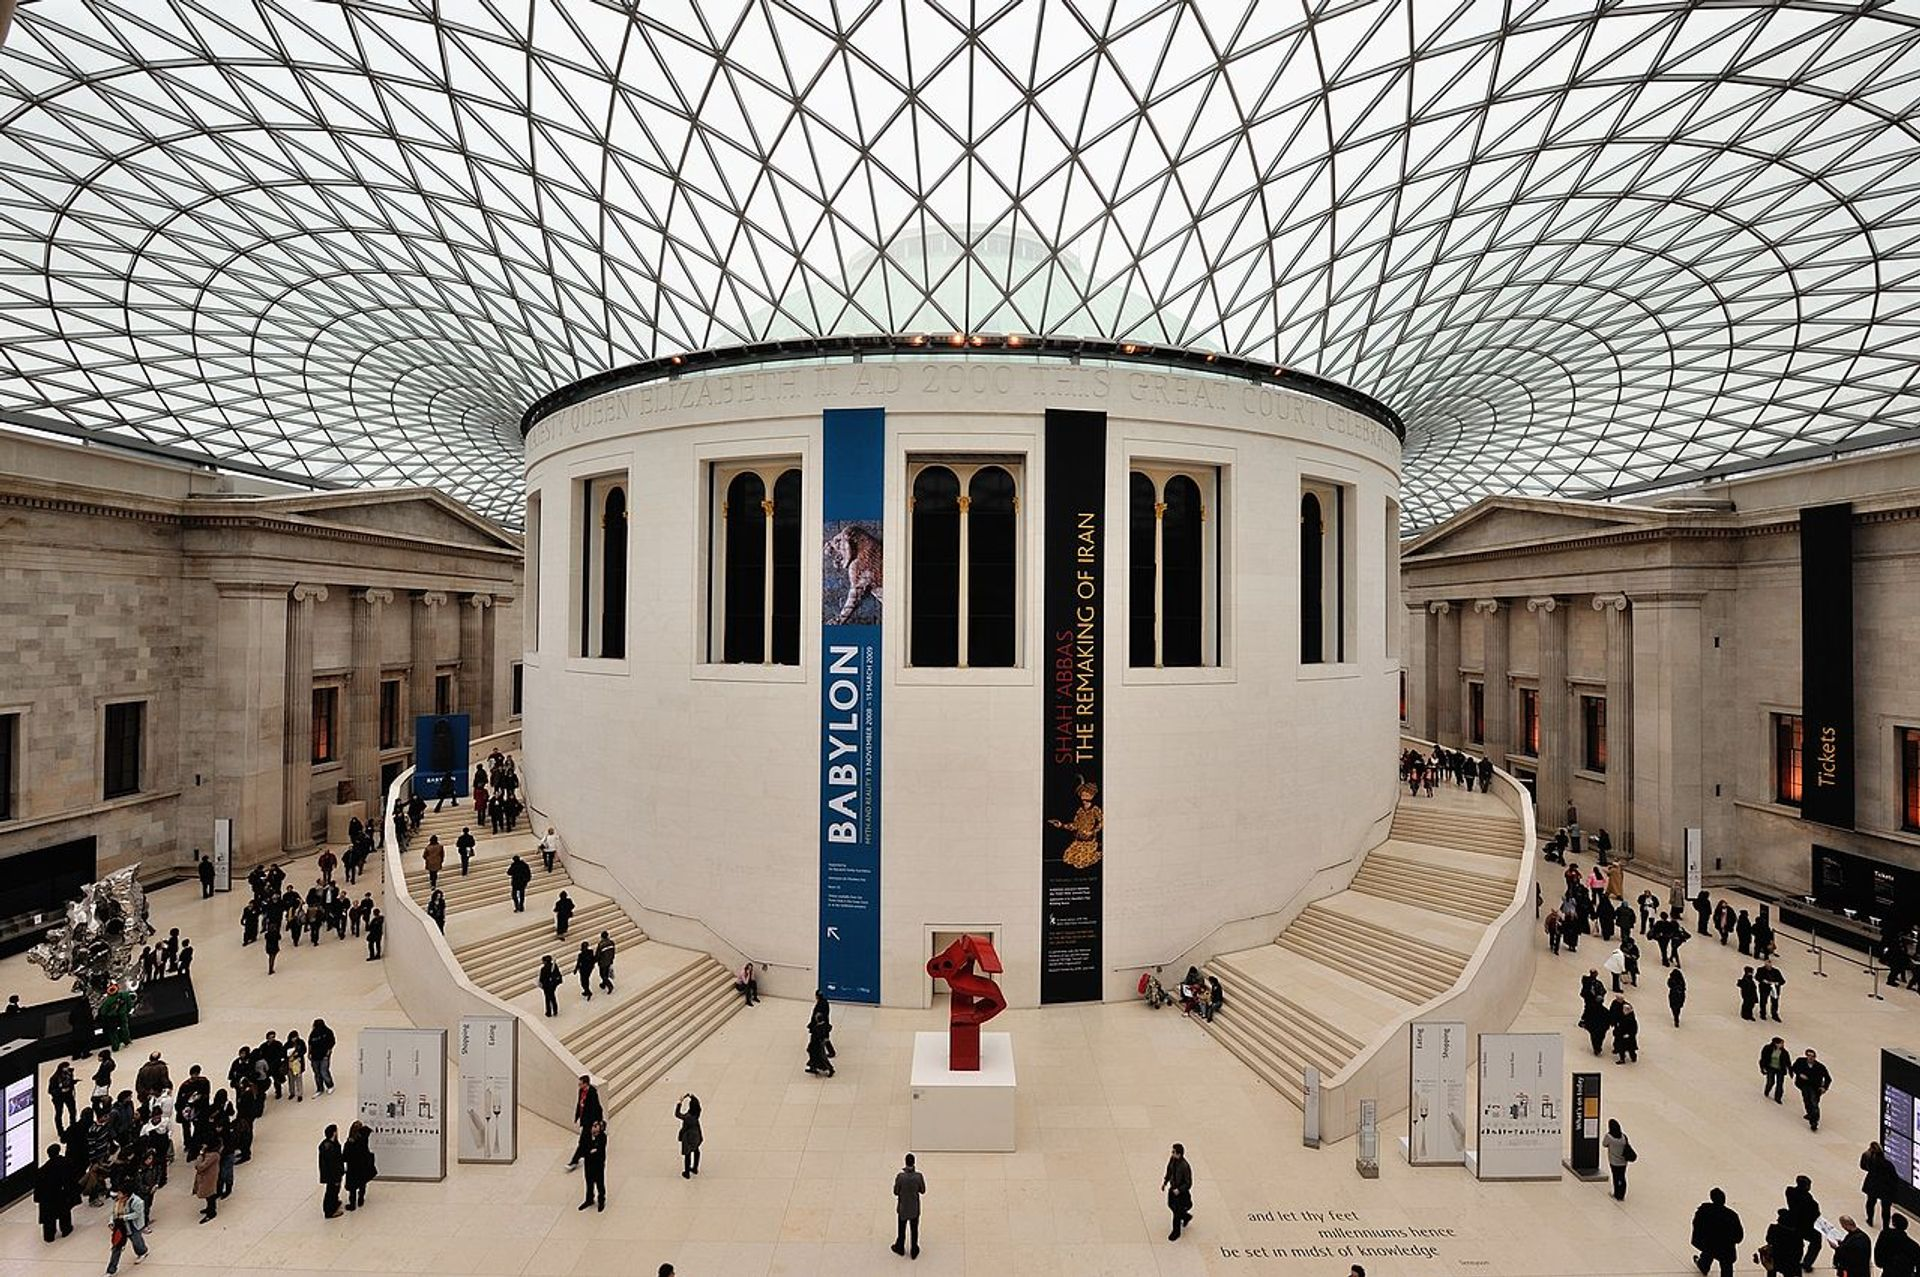 UK institutions such as London's British Museum may suffer from a decline in skilled workers from the EU after Brexit, report says Photo by Eric Pouhier via Wikimedia Commons